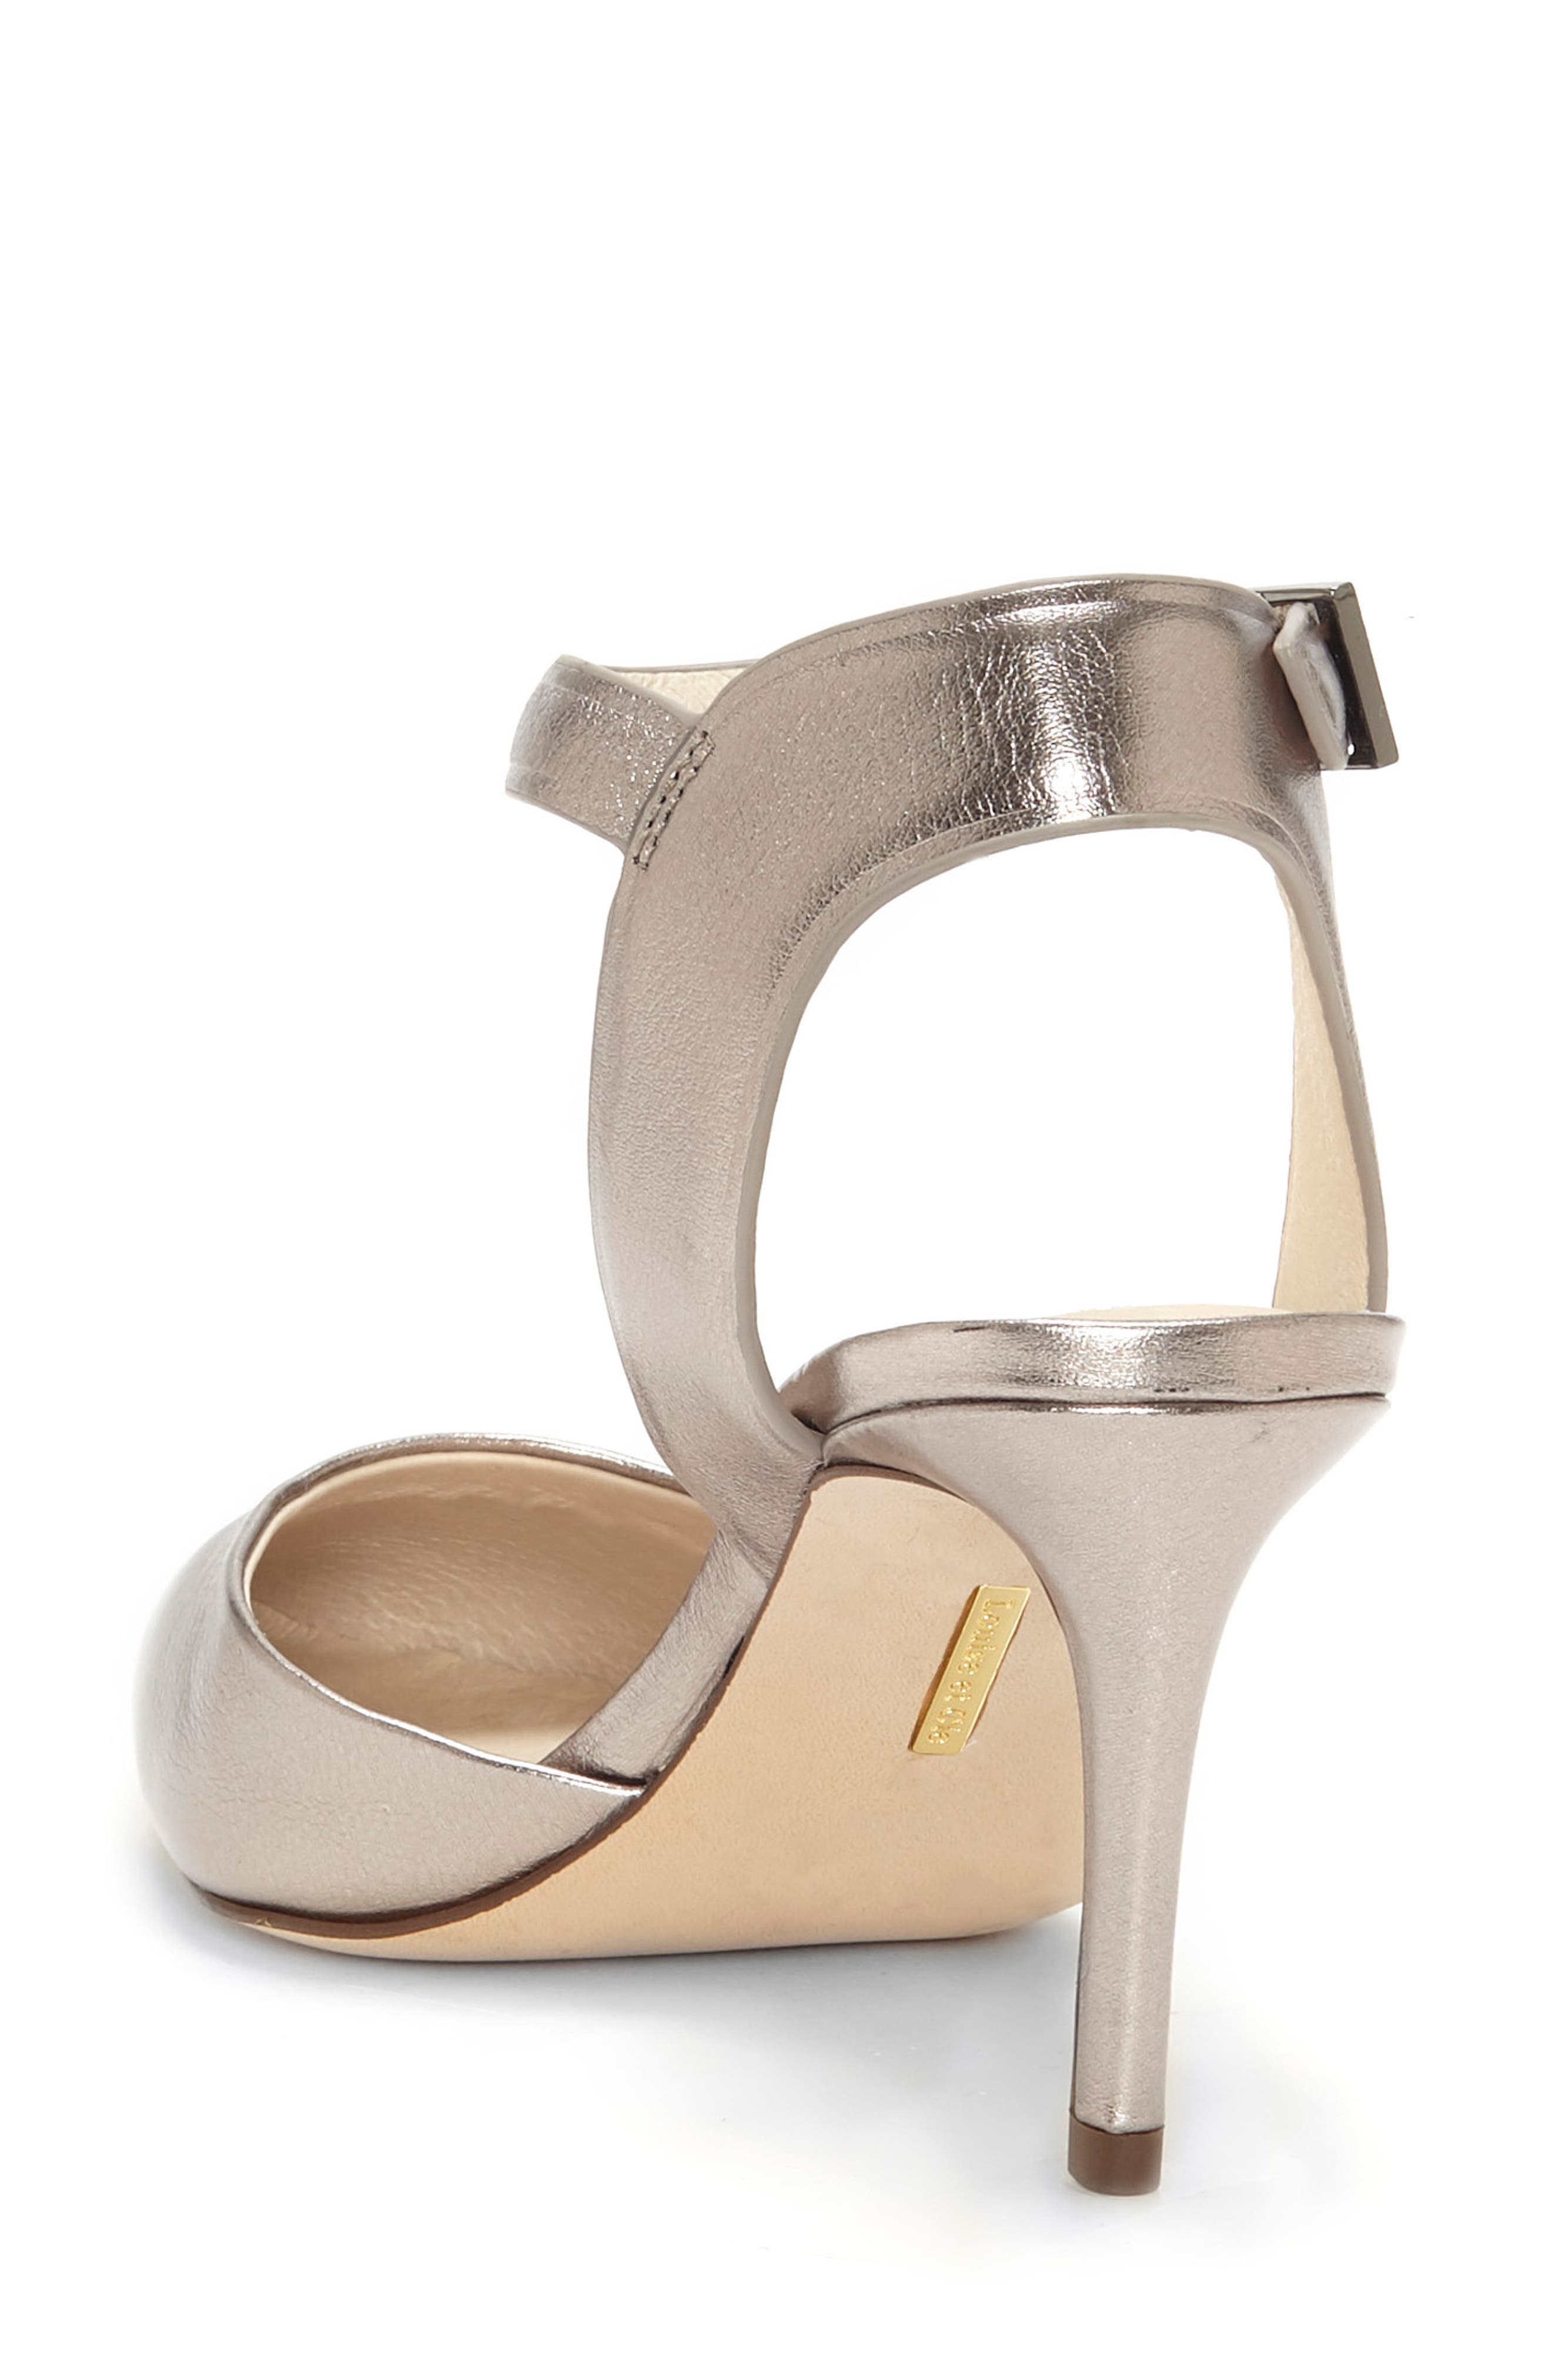 Kota Ankle Strap Pump,                             Alternate thumbnail 2, color,                             PETROL METALLIC